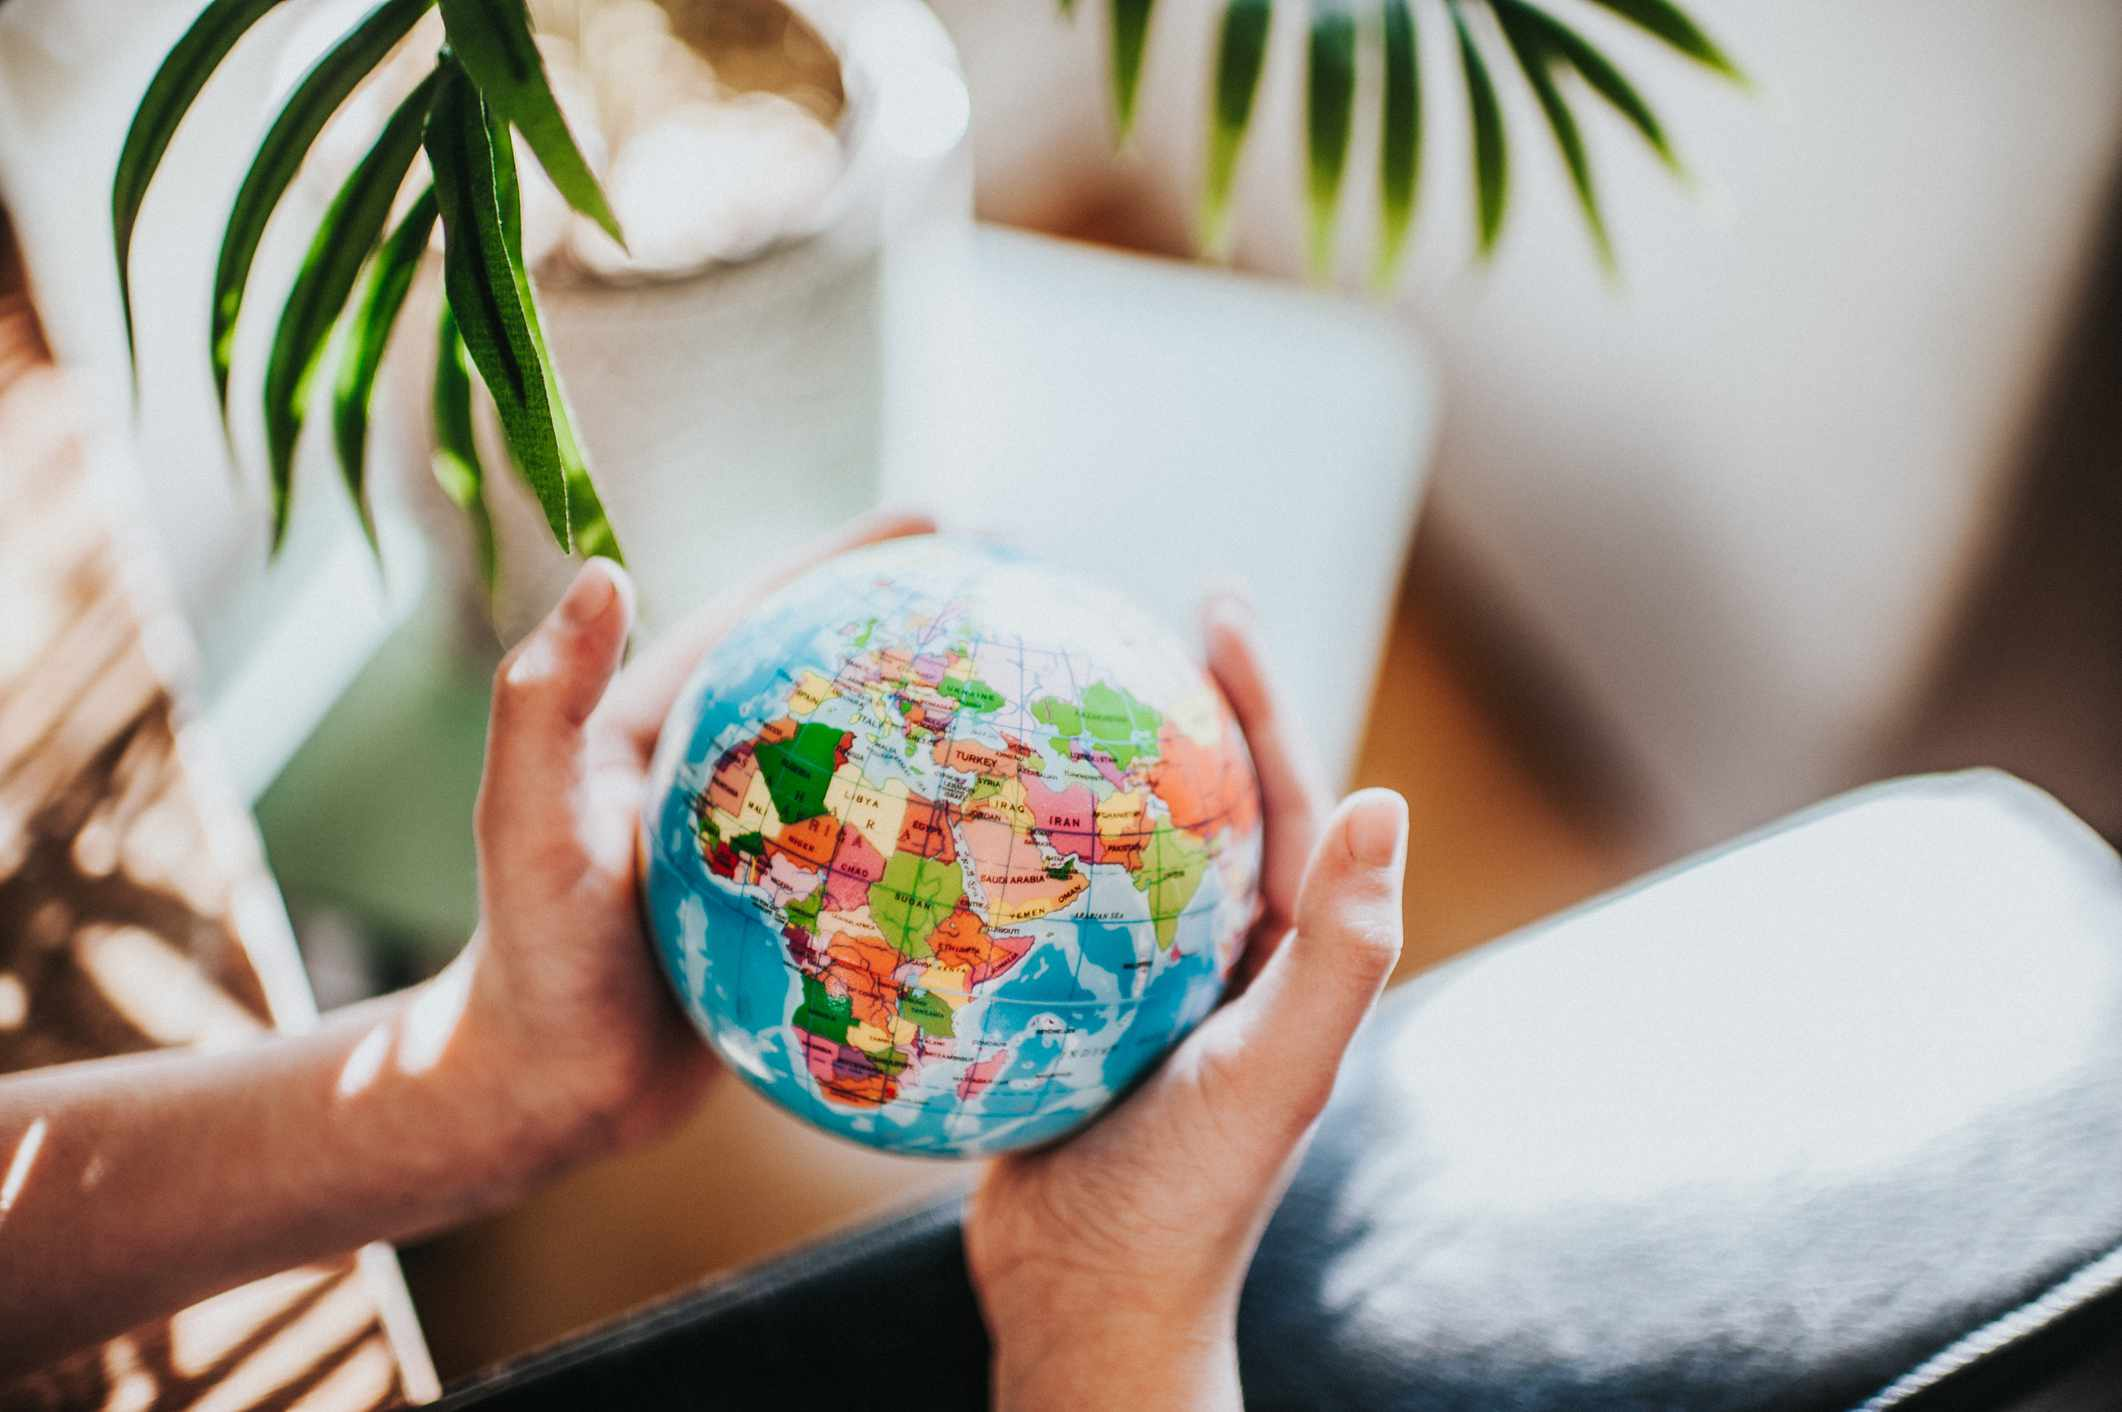 Hands hold small globe